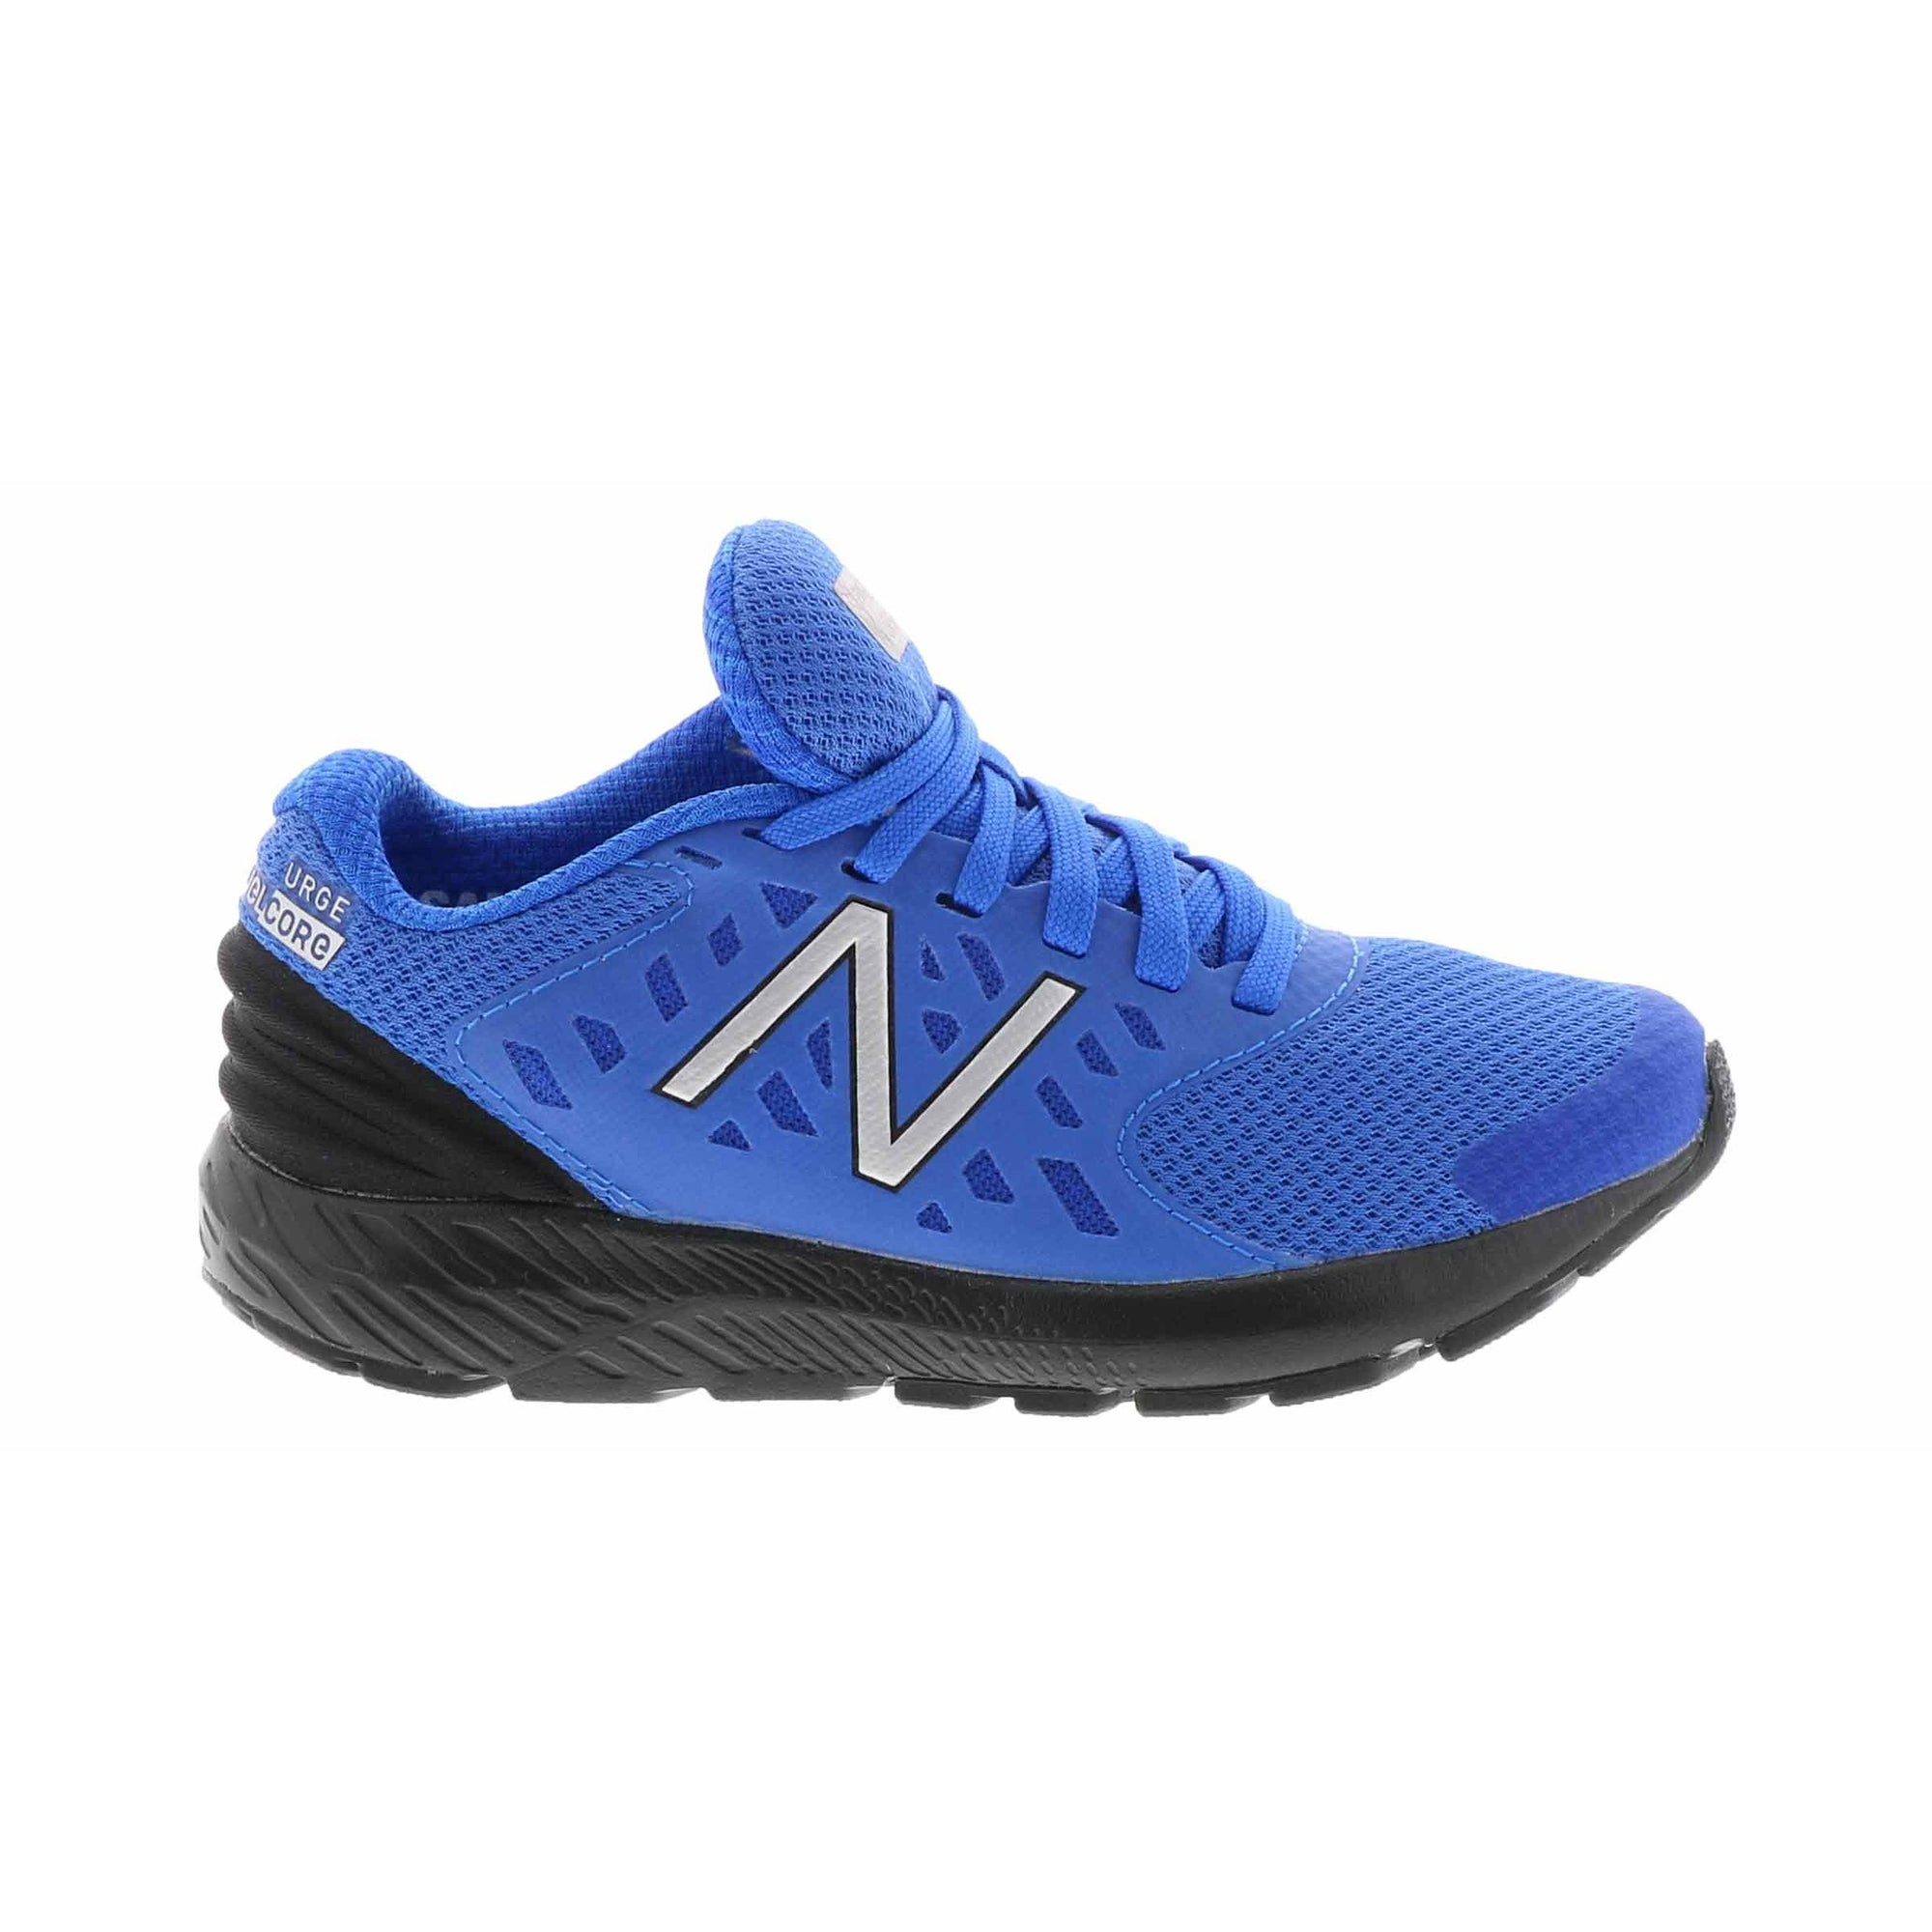 FuelCore Urge - Cobalt / Black by New Balance - Ponseti's Shoes